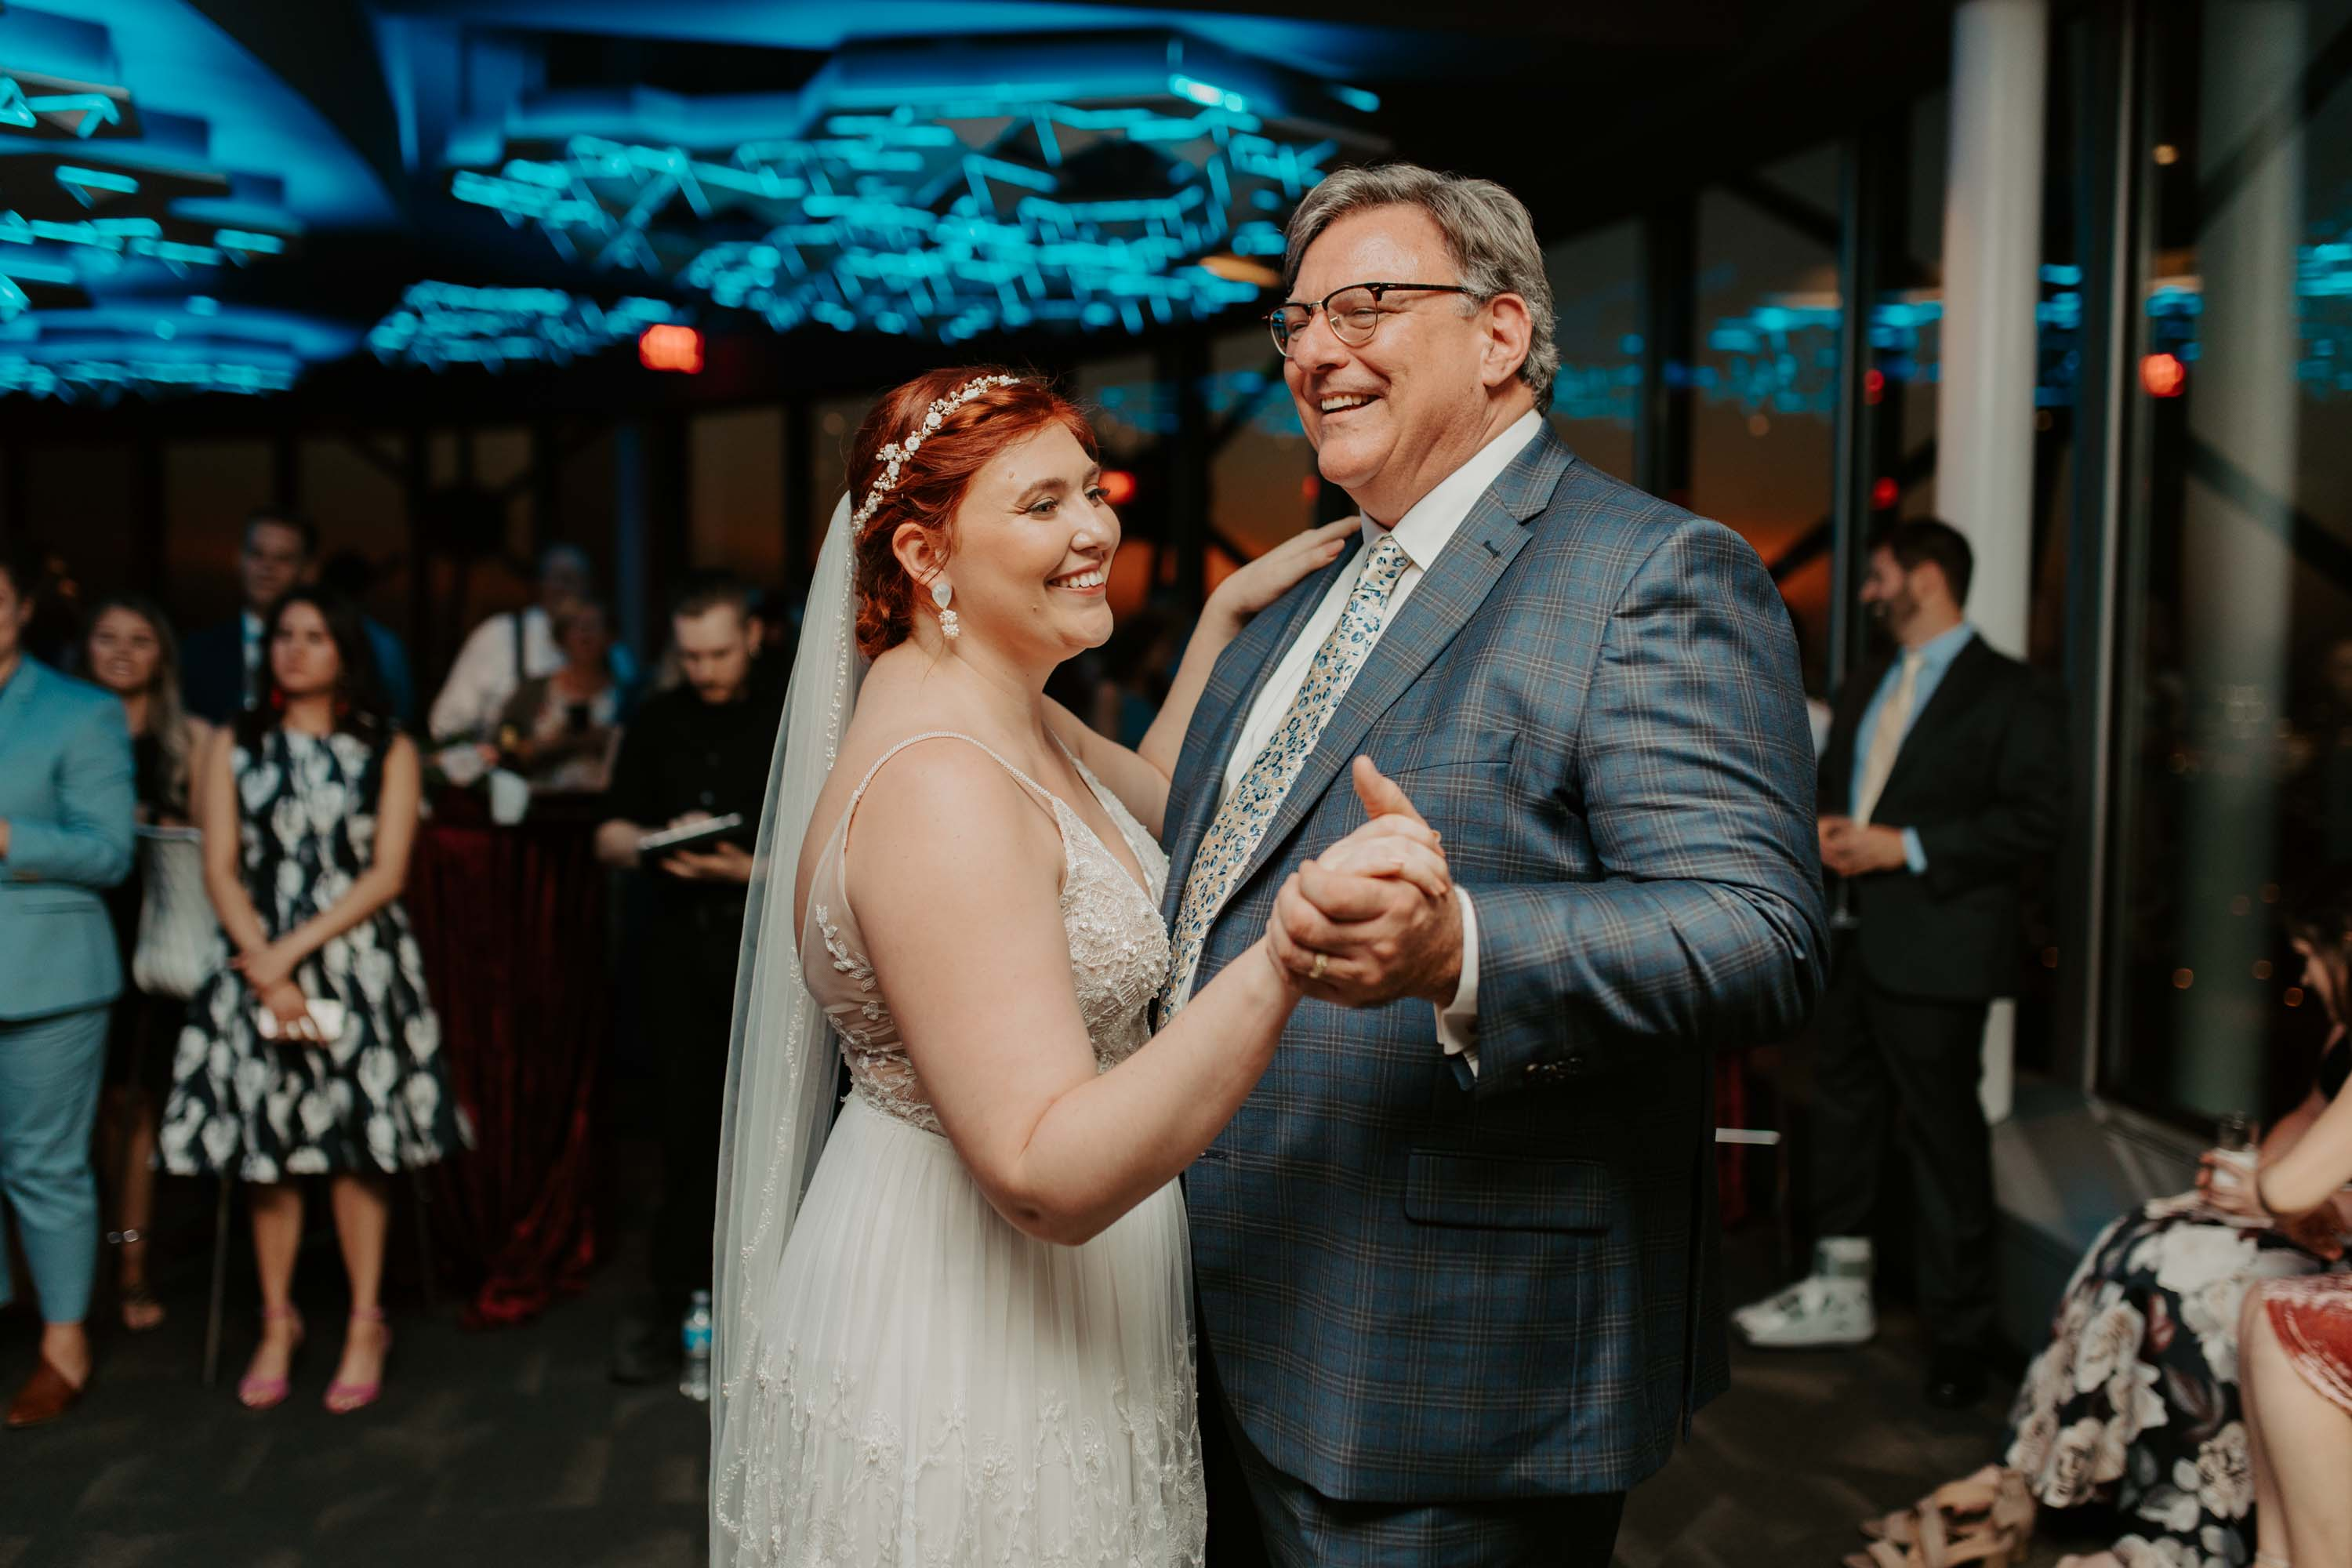 Father daughter dance at wedding ceremony in Dallas texas